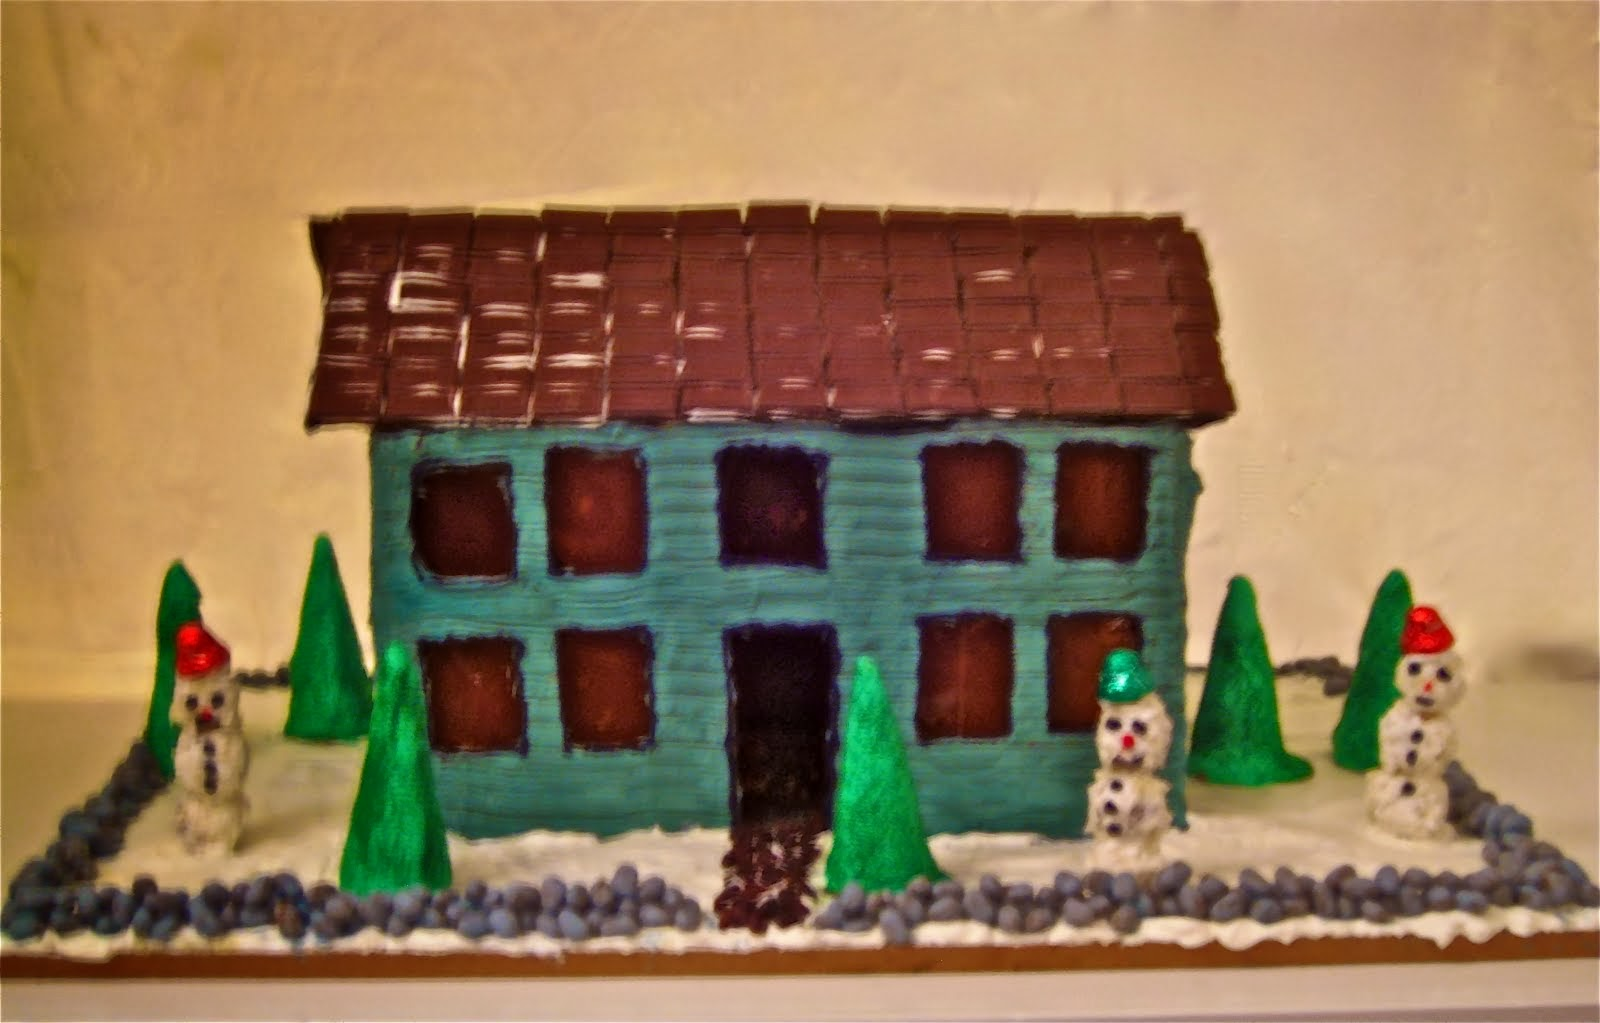 The Old Manse in gingerbread